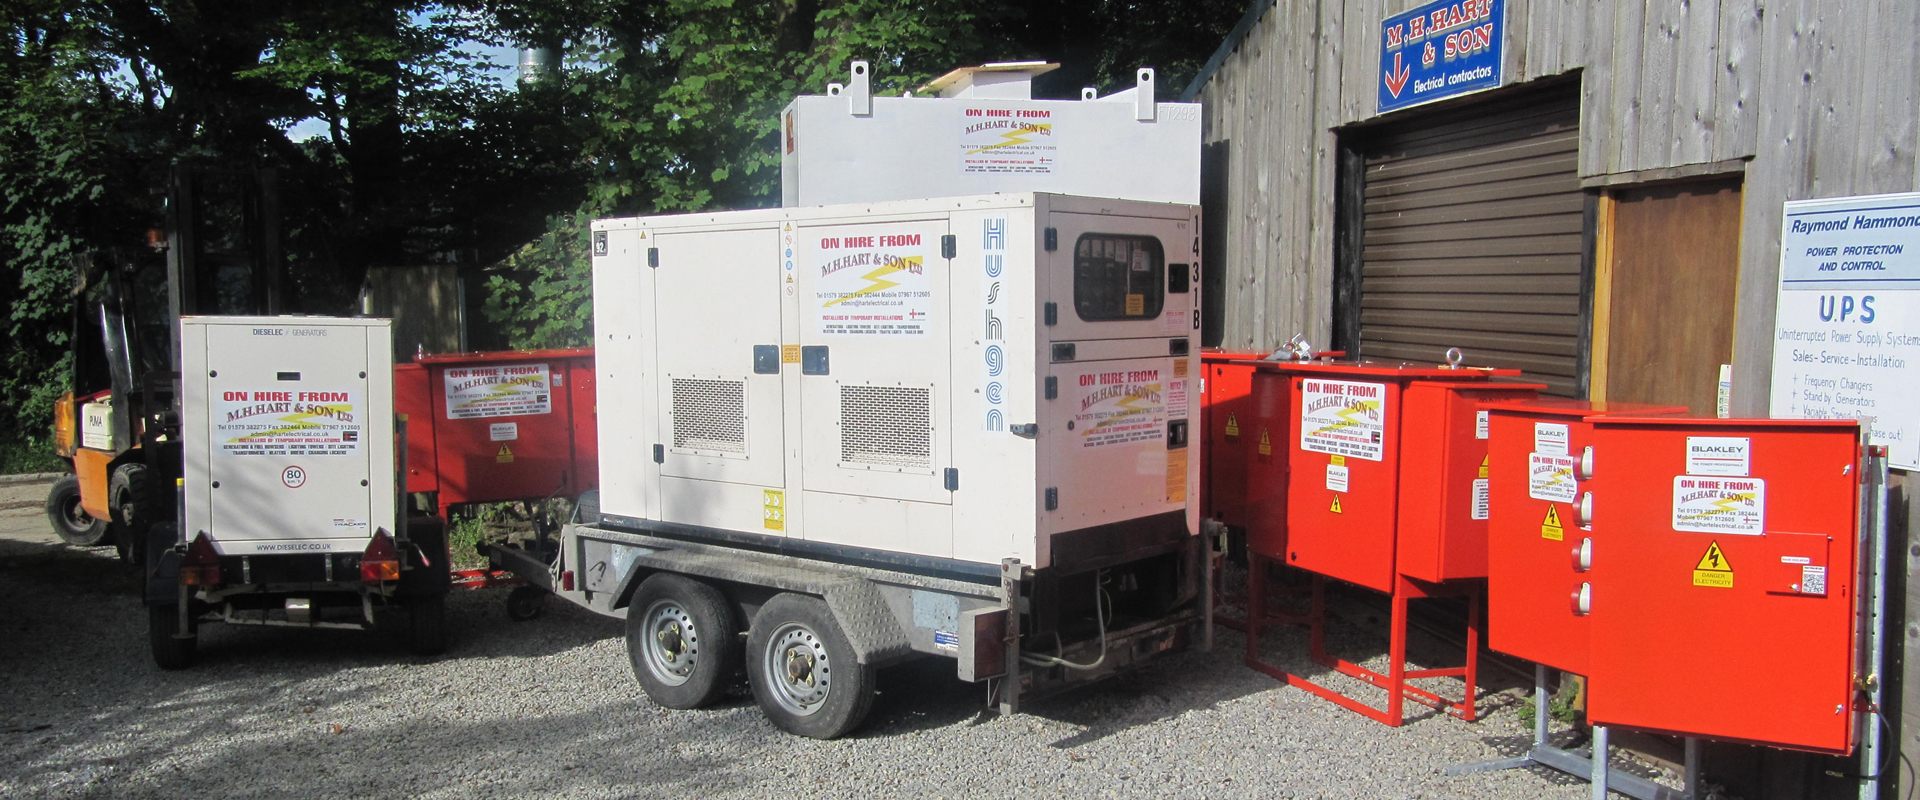 High-quality electrical equipment and professional electrical services